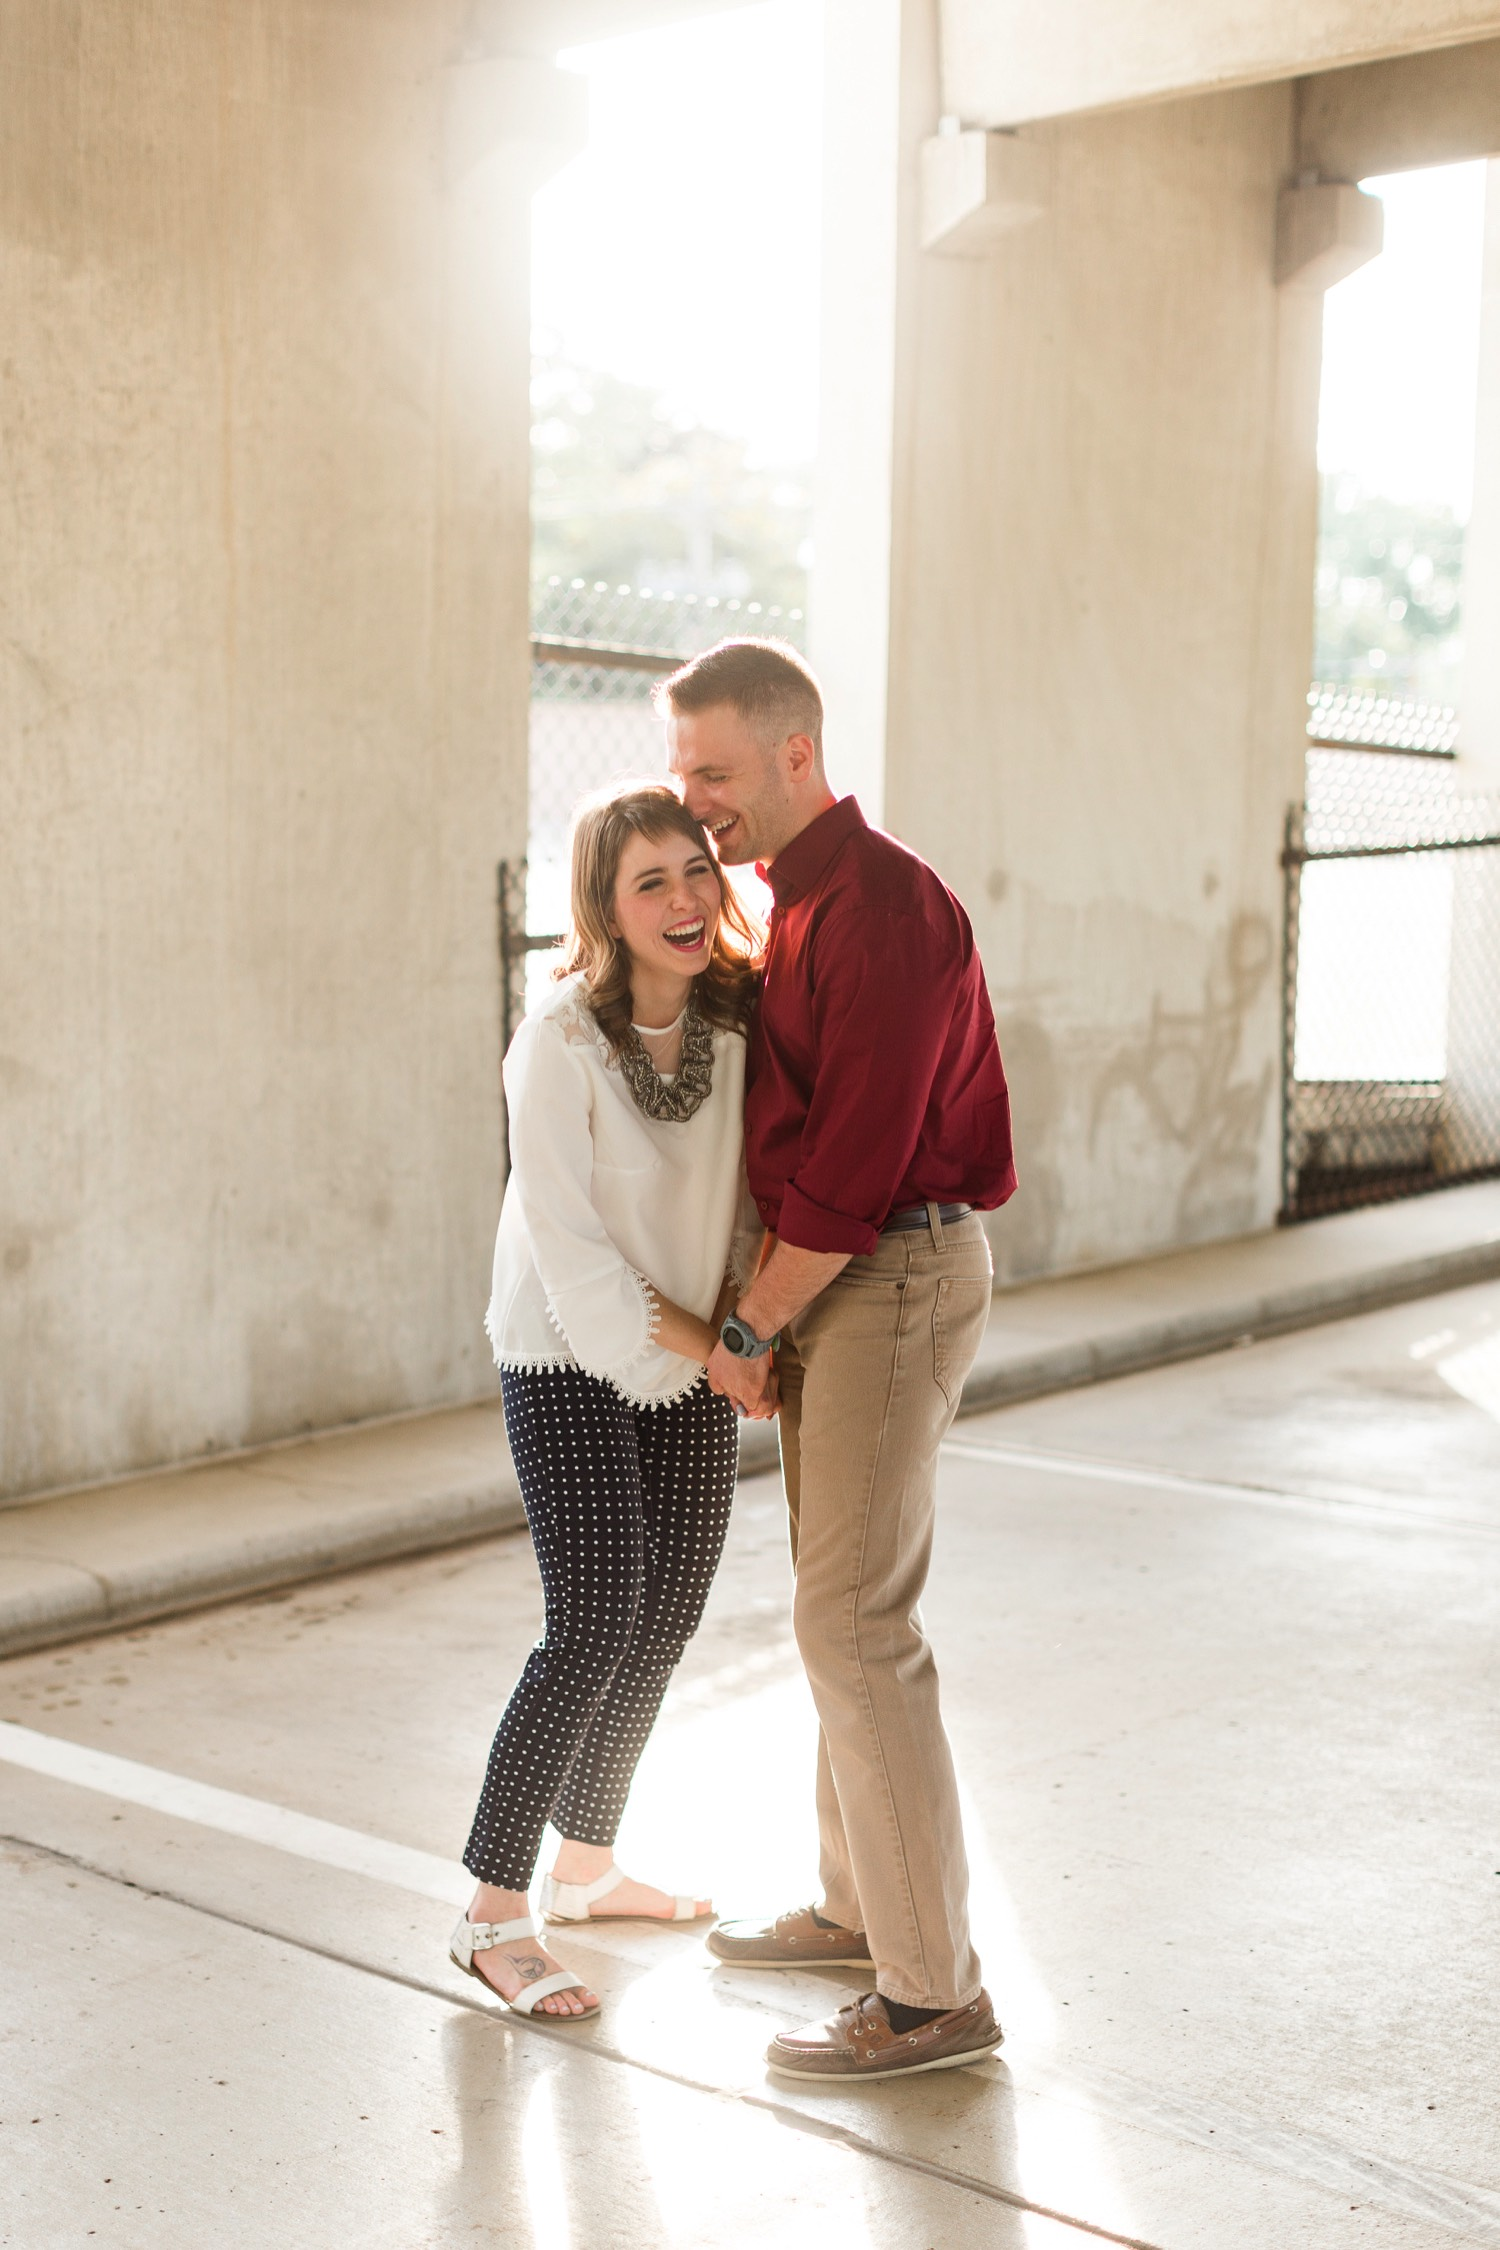 003_Abigail Berge Photography-Engagement-26.jpg